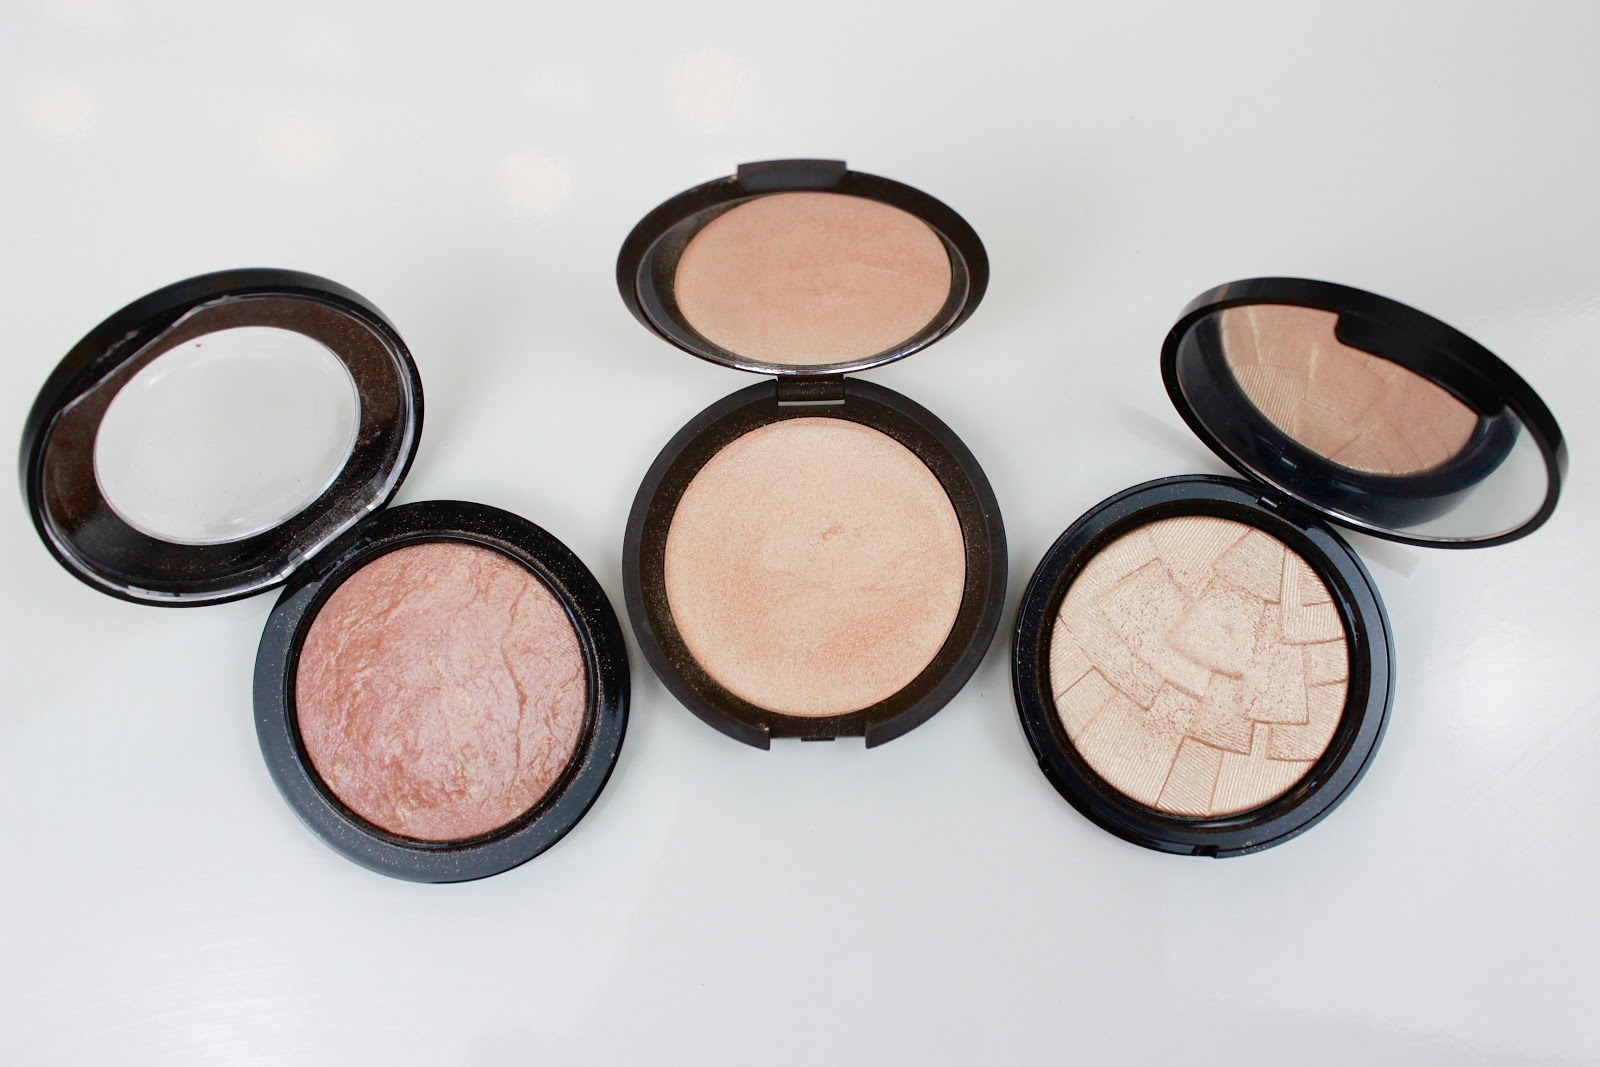 Mac Soft and Gentle, Becca Champagne Pop, Anastasia Beverly Hills So Hollywood